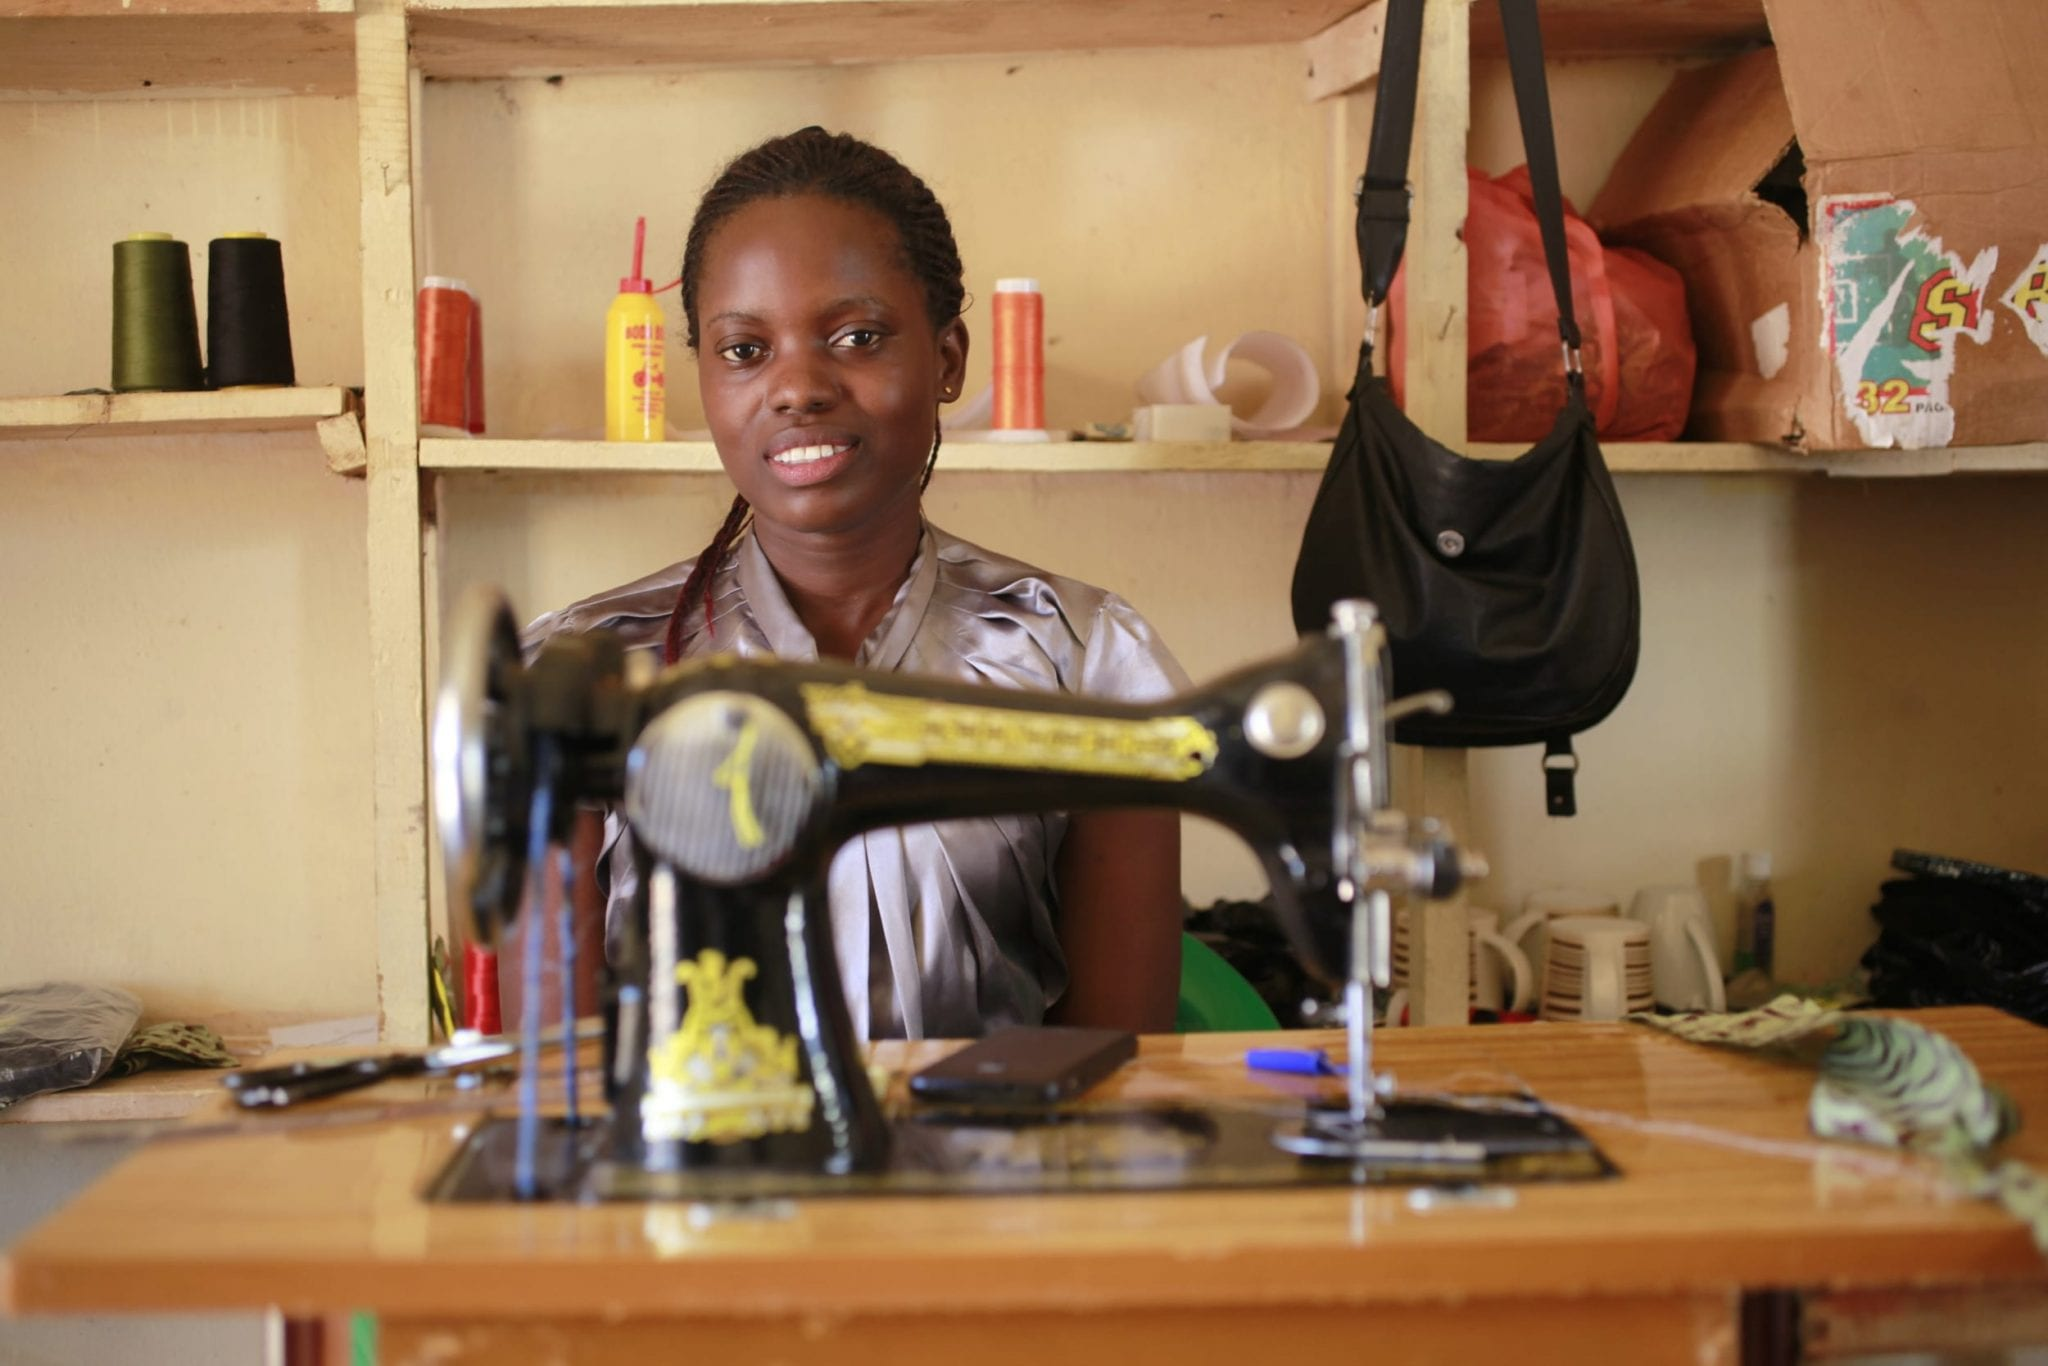 startup grant small business creative jobs employment economic security uganda sewing